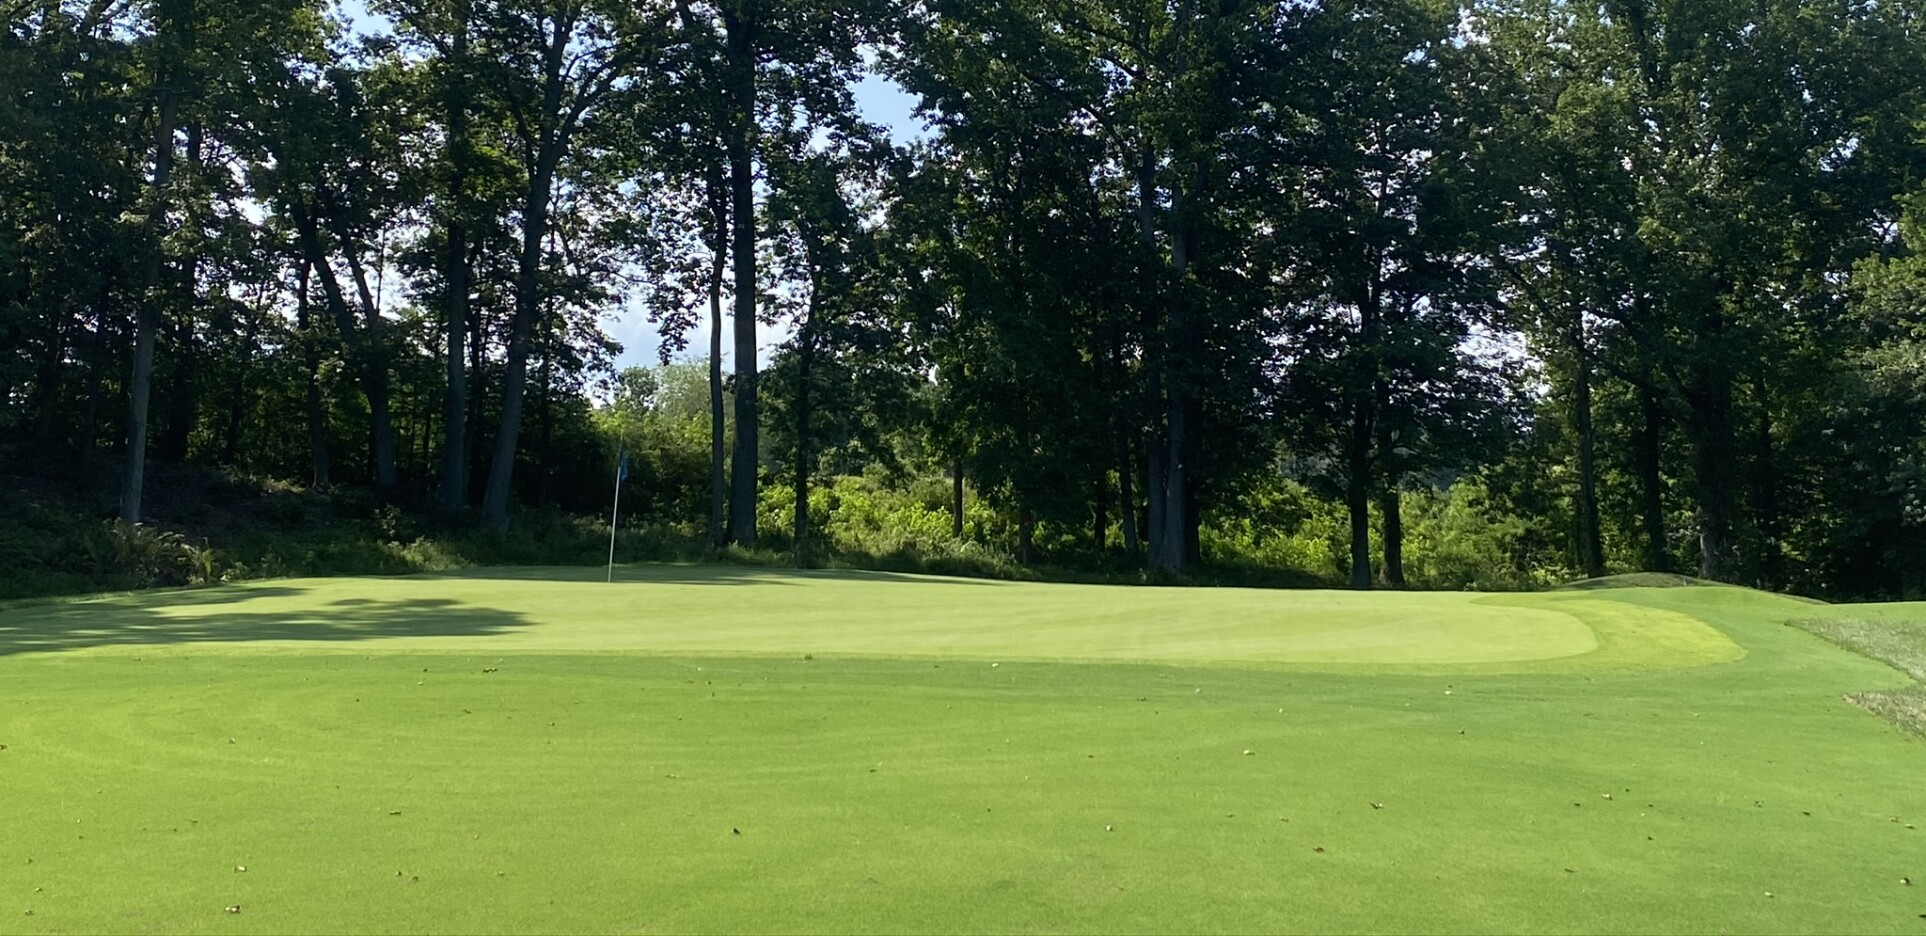 Number 6 green at the Preserve at Eisenhower Golf Course